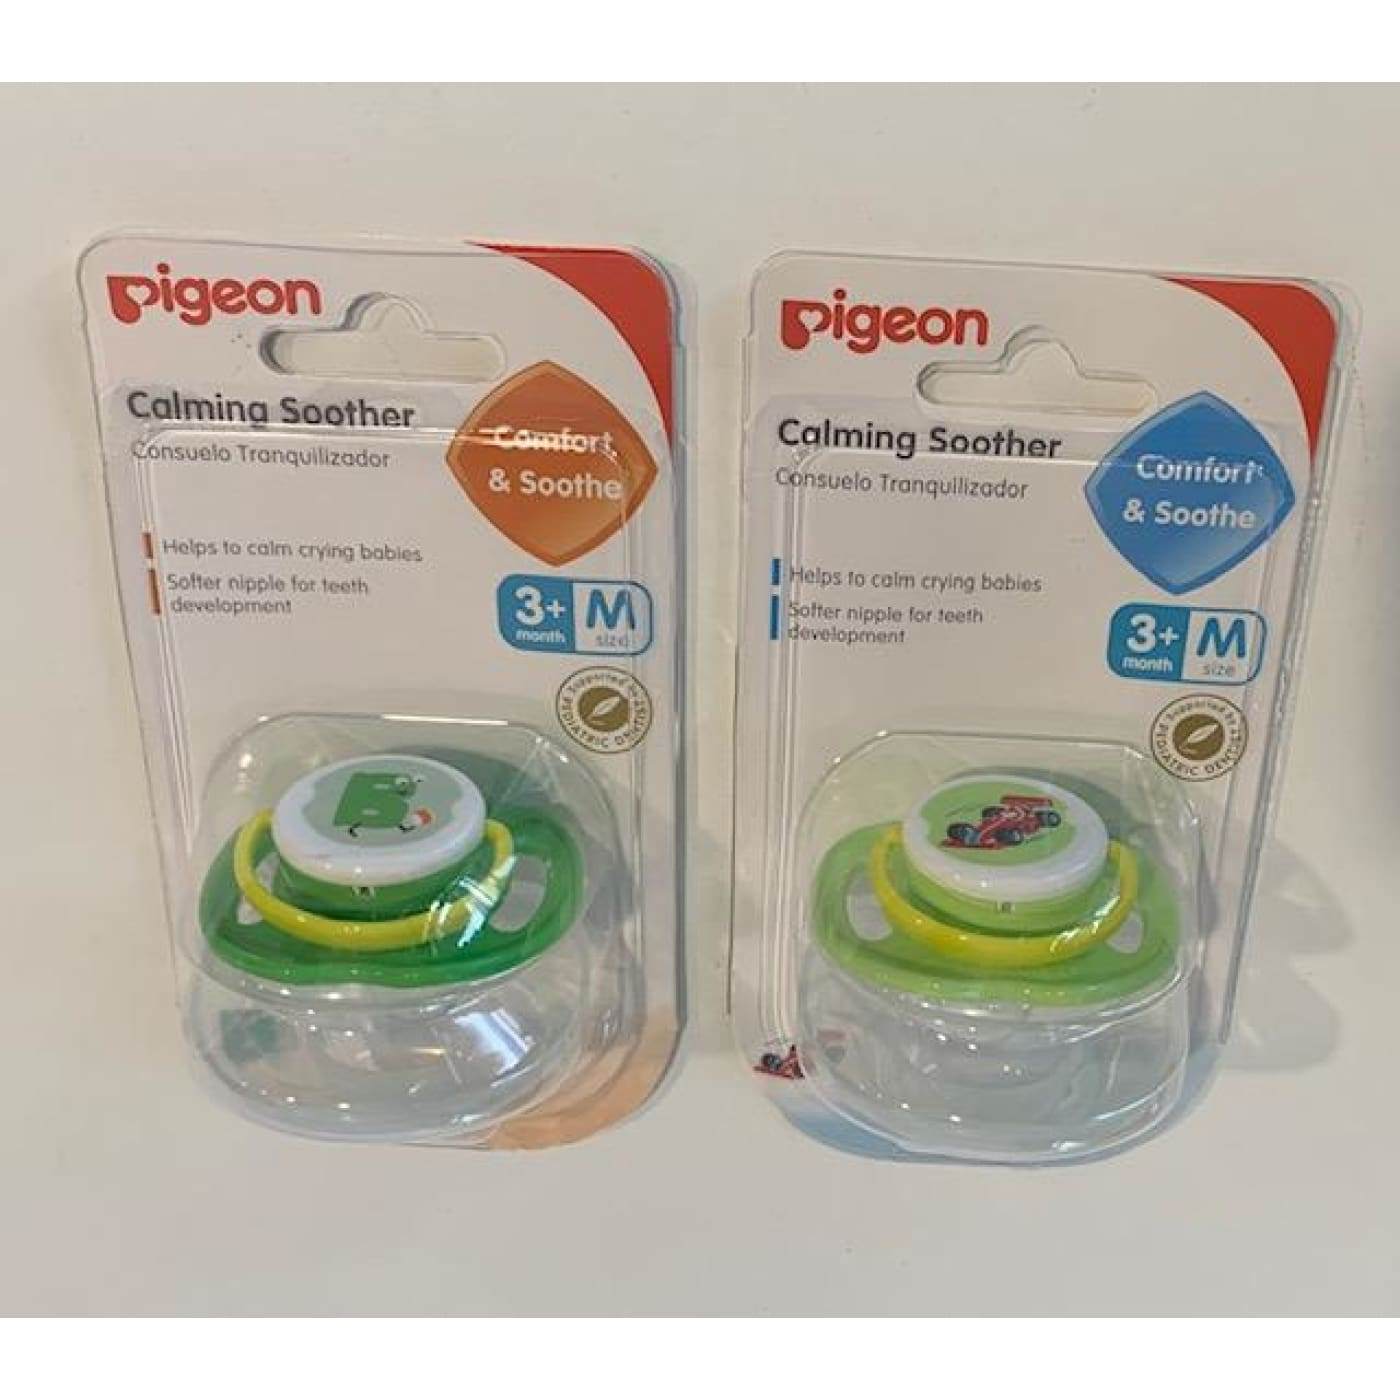 Pigeon Calming Soother - Medium - M - NURSING & FEEDING - DUMMIES/SOOTHERS/CLIPS